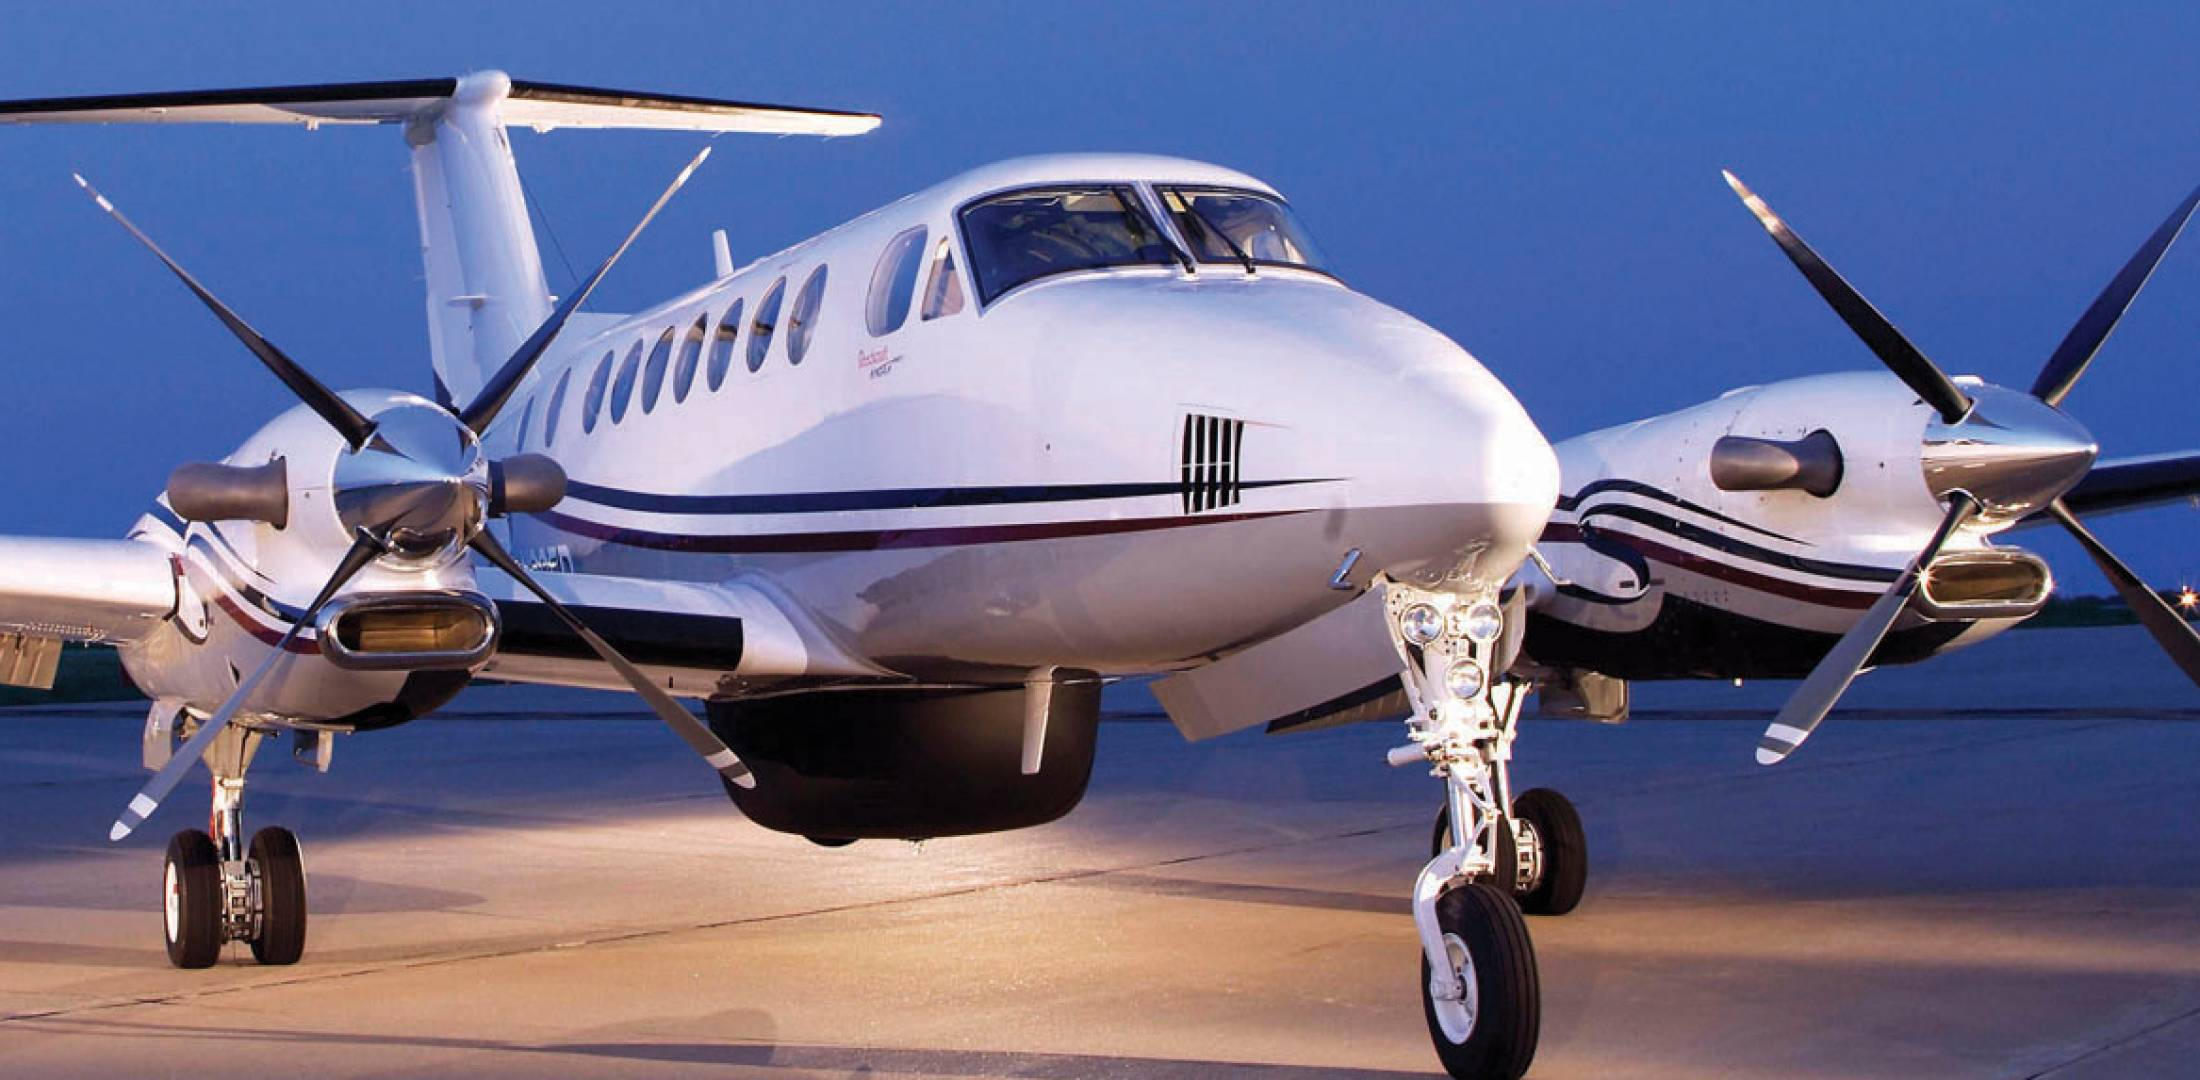 In acquiring the Broughton works, Marshall not only bought access into the lucrative Hawker and Beechcraft world, but also gained a design and engineering facility highly experienced in special-mission modifications, such as that applied to this King Air.